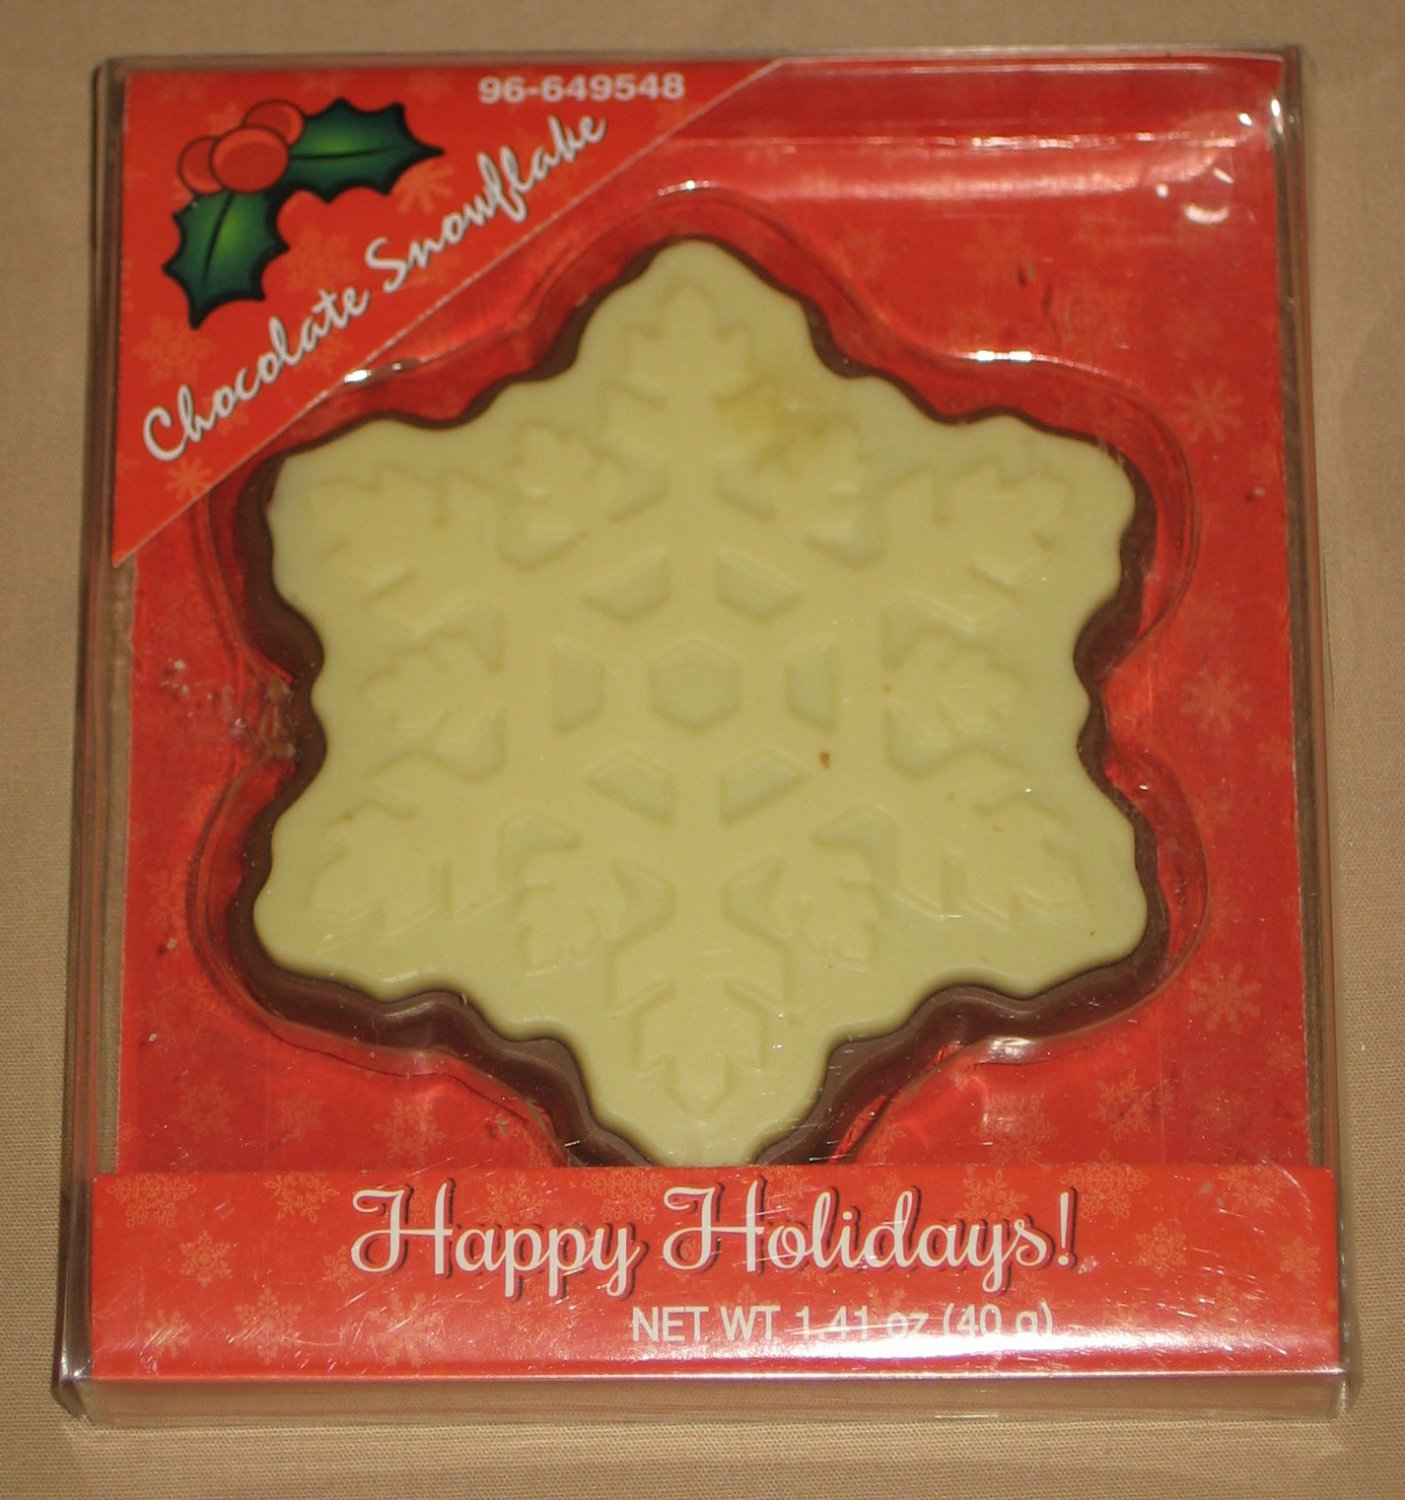 Chocolate Snowflake Candy in Sealed Holiday Package